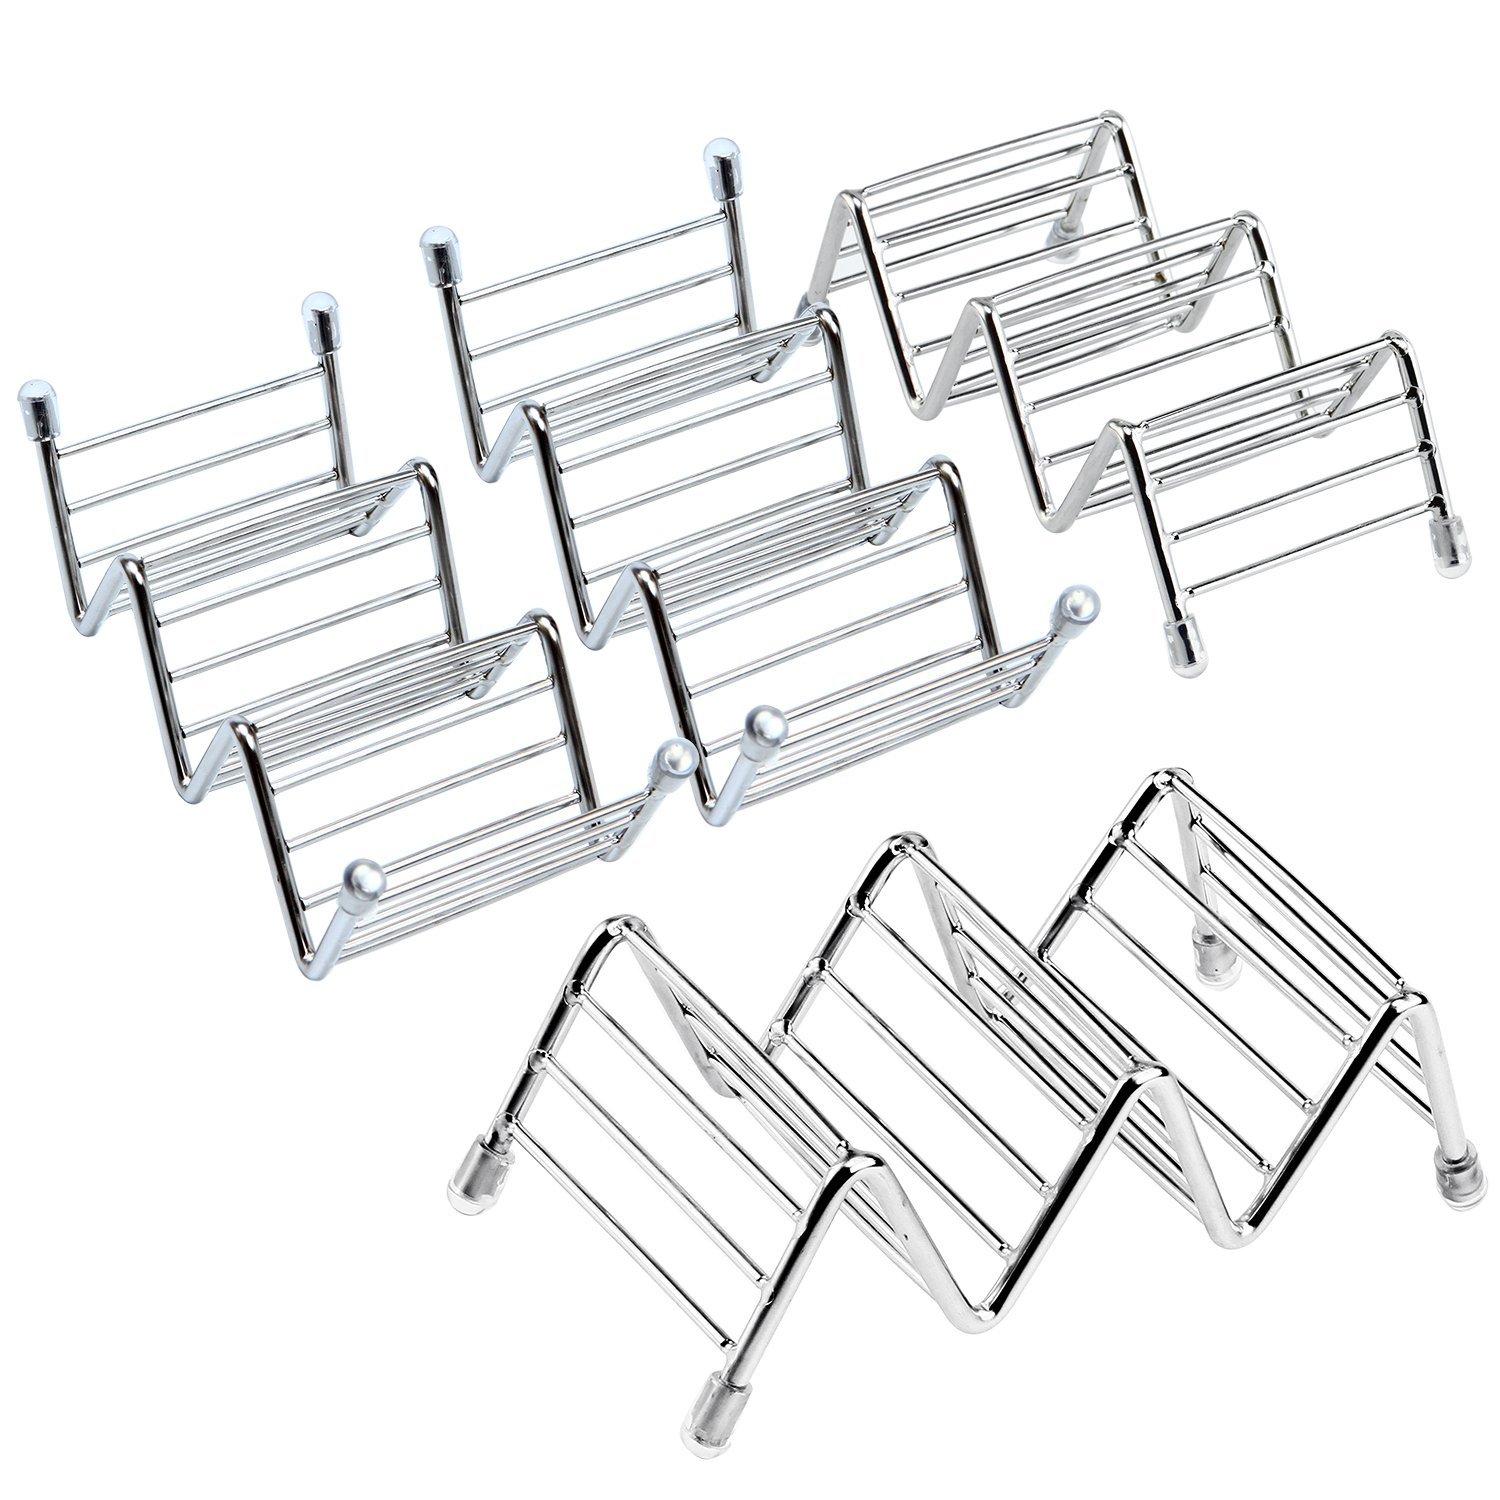 Coobey 4 Pack Stainless Steel Taco Holders Taco Stand Rustproof Taco Rack Hold 2 or 3 Hard or Soft Shell Tacos Truck Tray Style Oven Safe for Baking